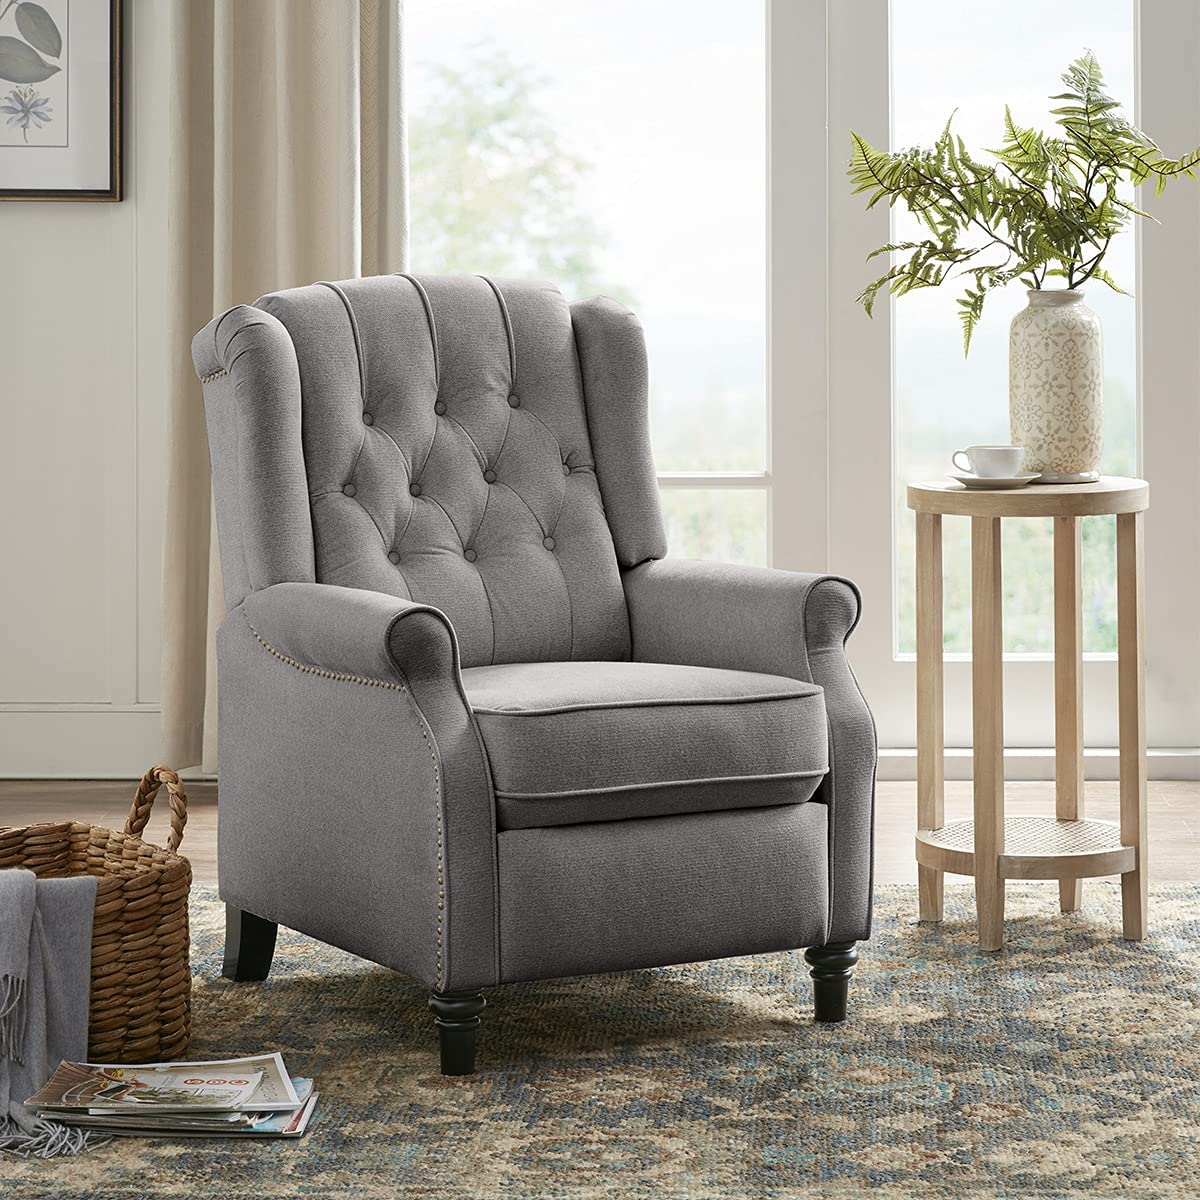 Best For Back Comfortable: YANXUAN Dual-function Operation Pushback Recliner with Recliner.